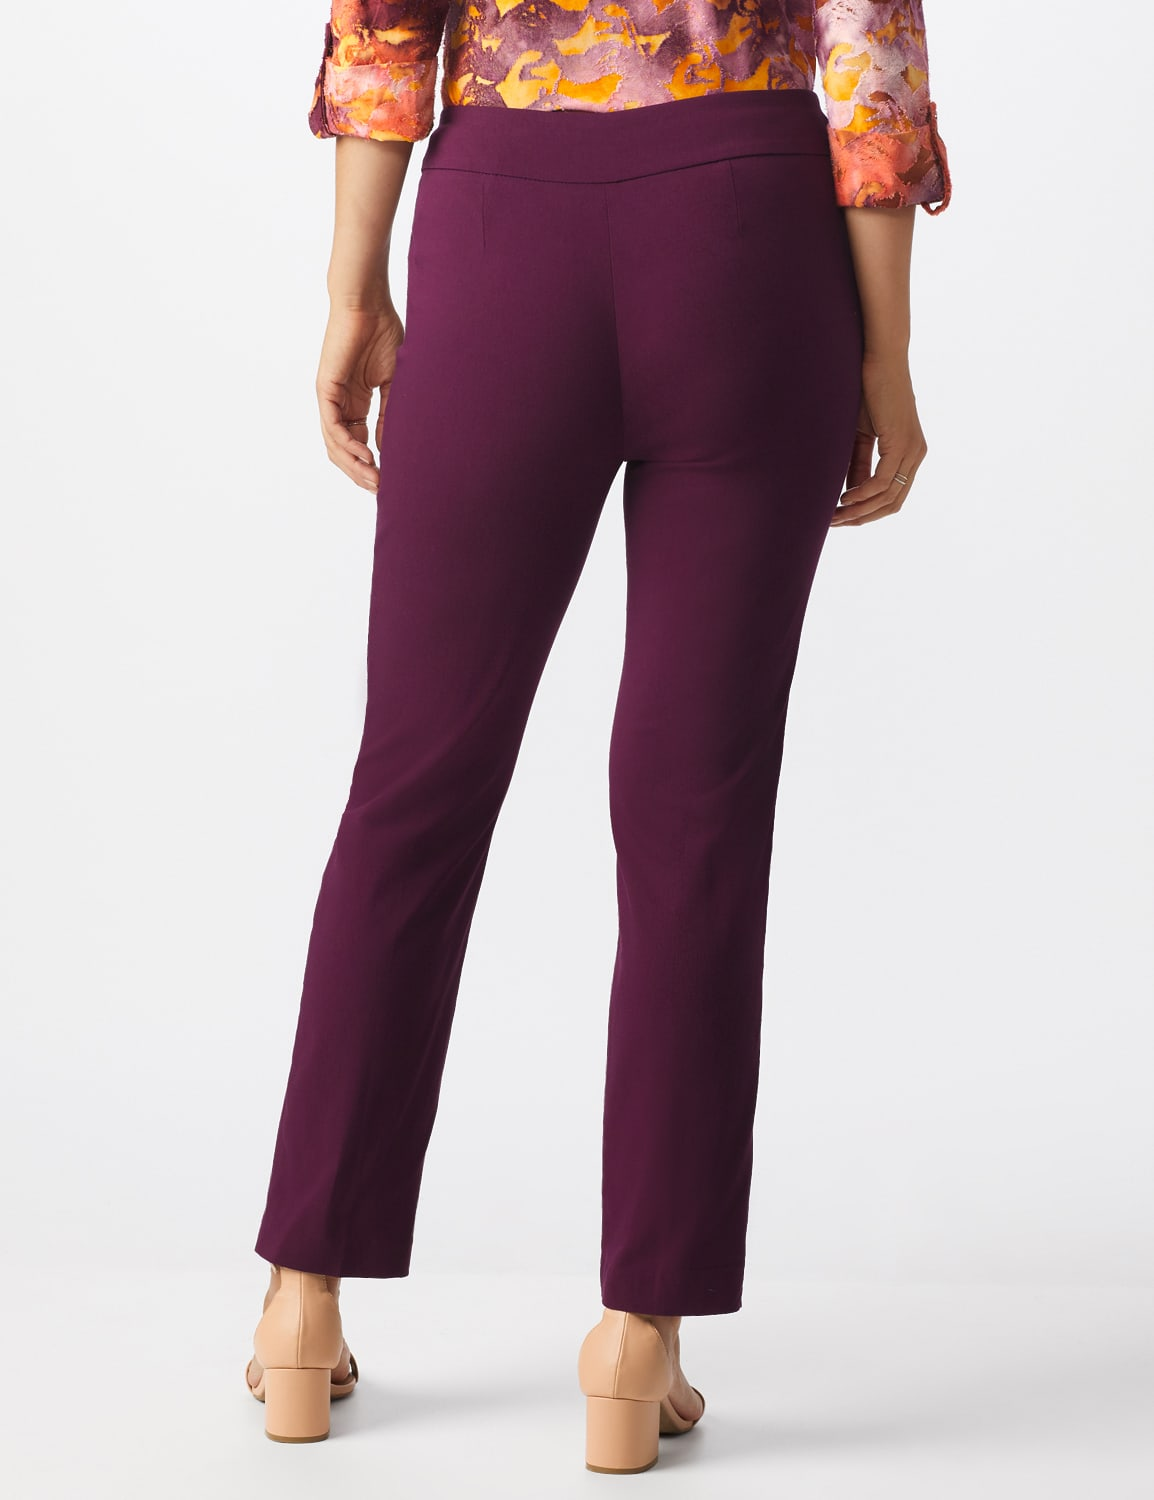 Superstretch Pull On Pants with Rivet Trim L Pockets - Plum - Back